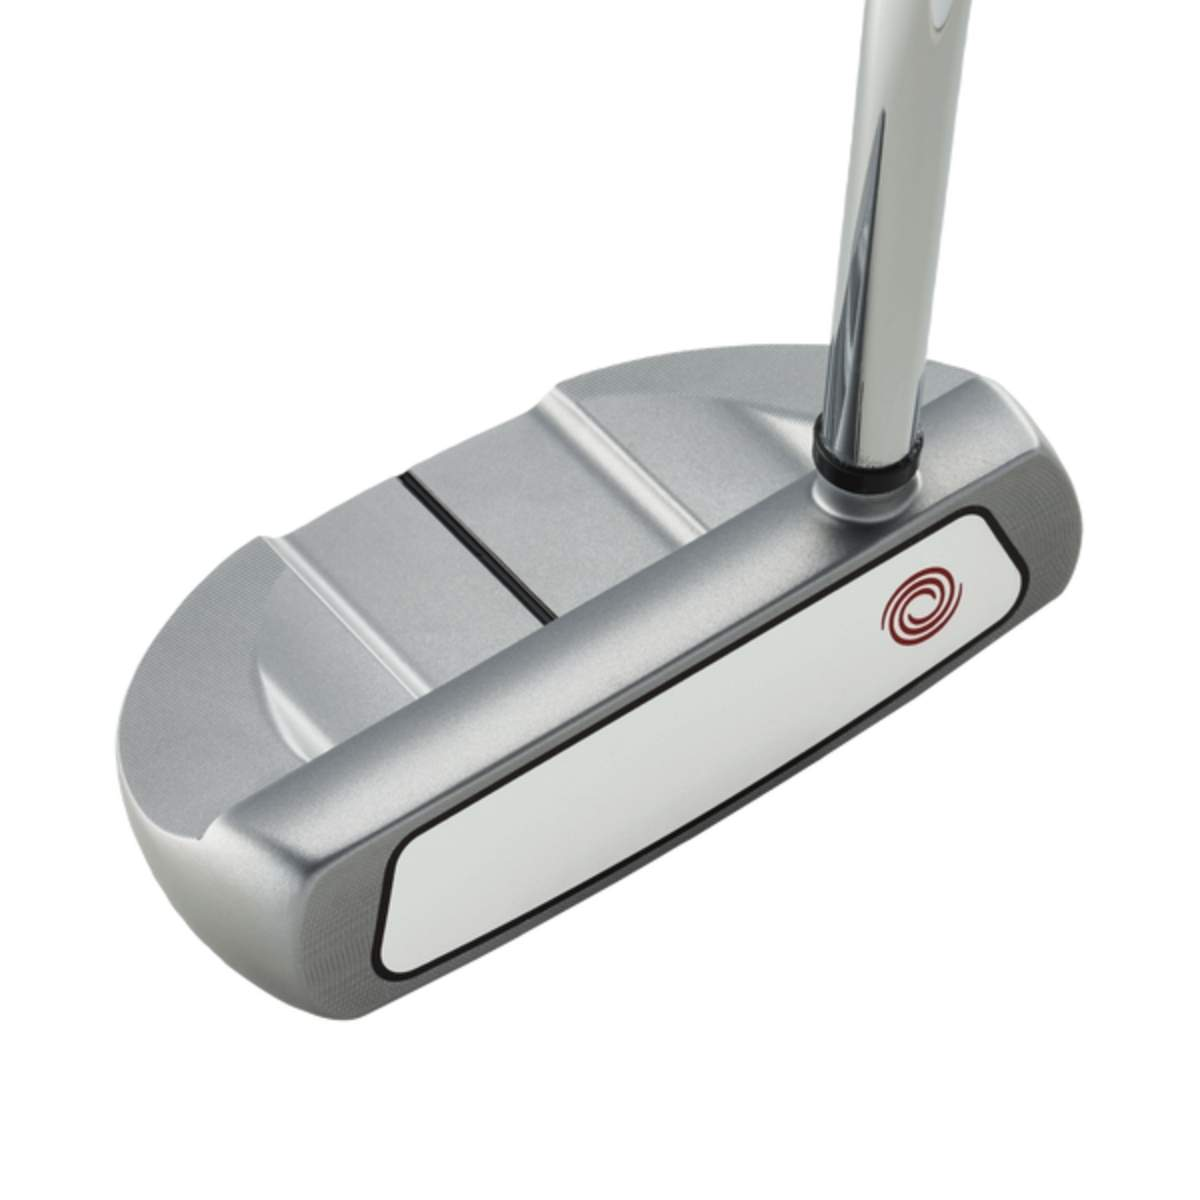 Odyssey White Hot OG #5 Stroke Lab Putter